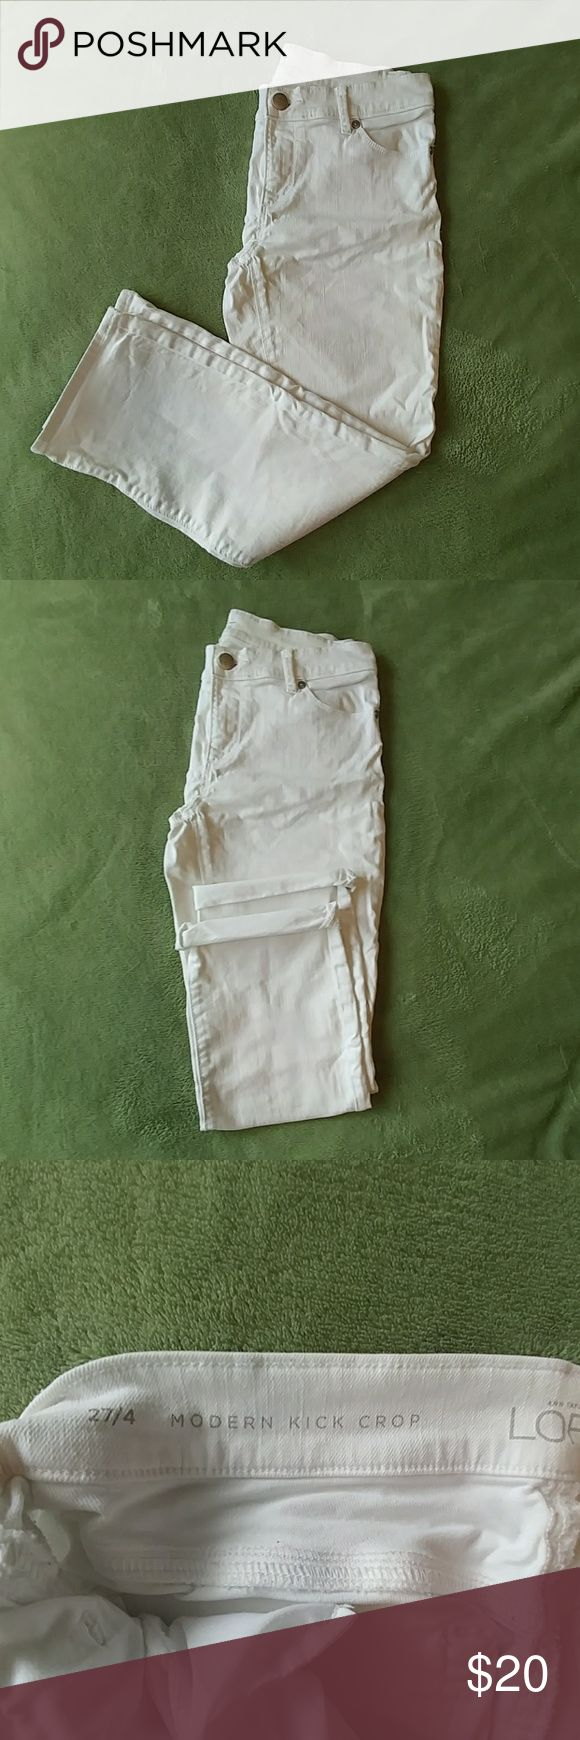 "White Kick Crop Jean This white jean is cropped and is a ""kick crop"" meaning that it is flared just a bit at the buttom where it is cropped. Great condition. Been in storage for the season so just a little wrinkly. LOFT Jeans Ankle & Cropped"